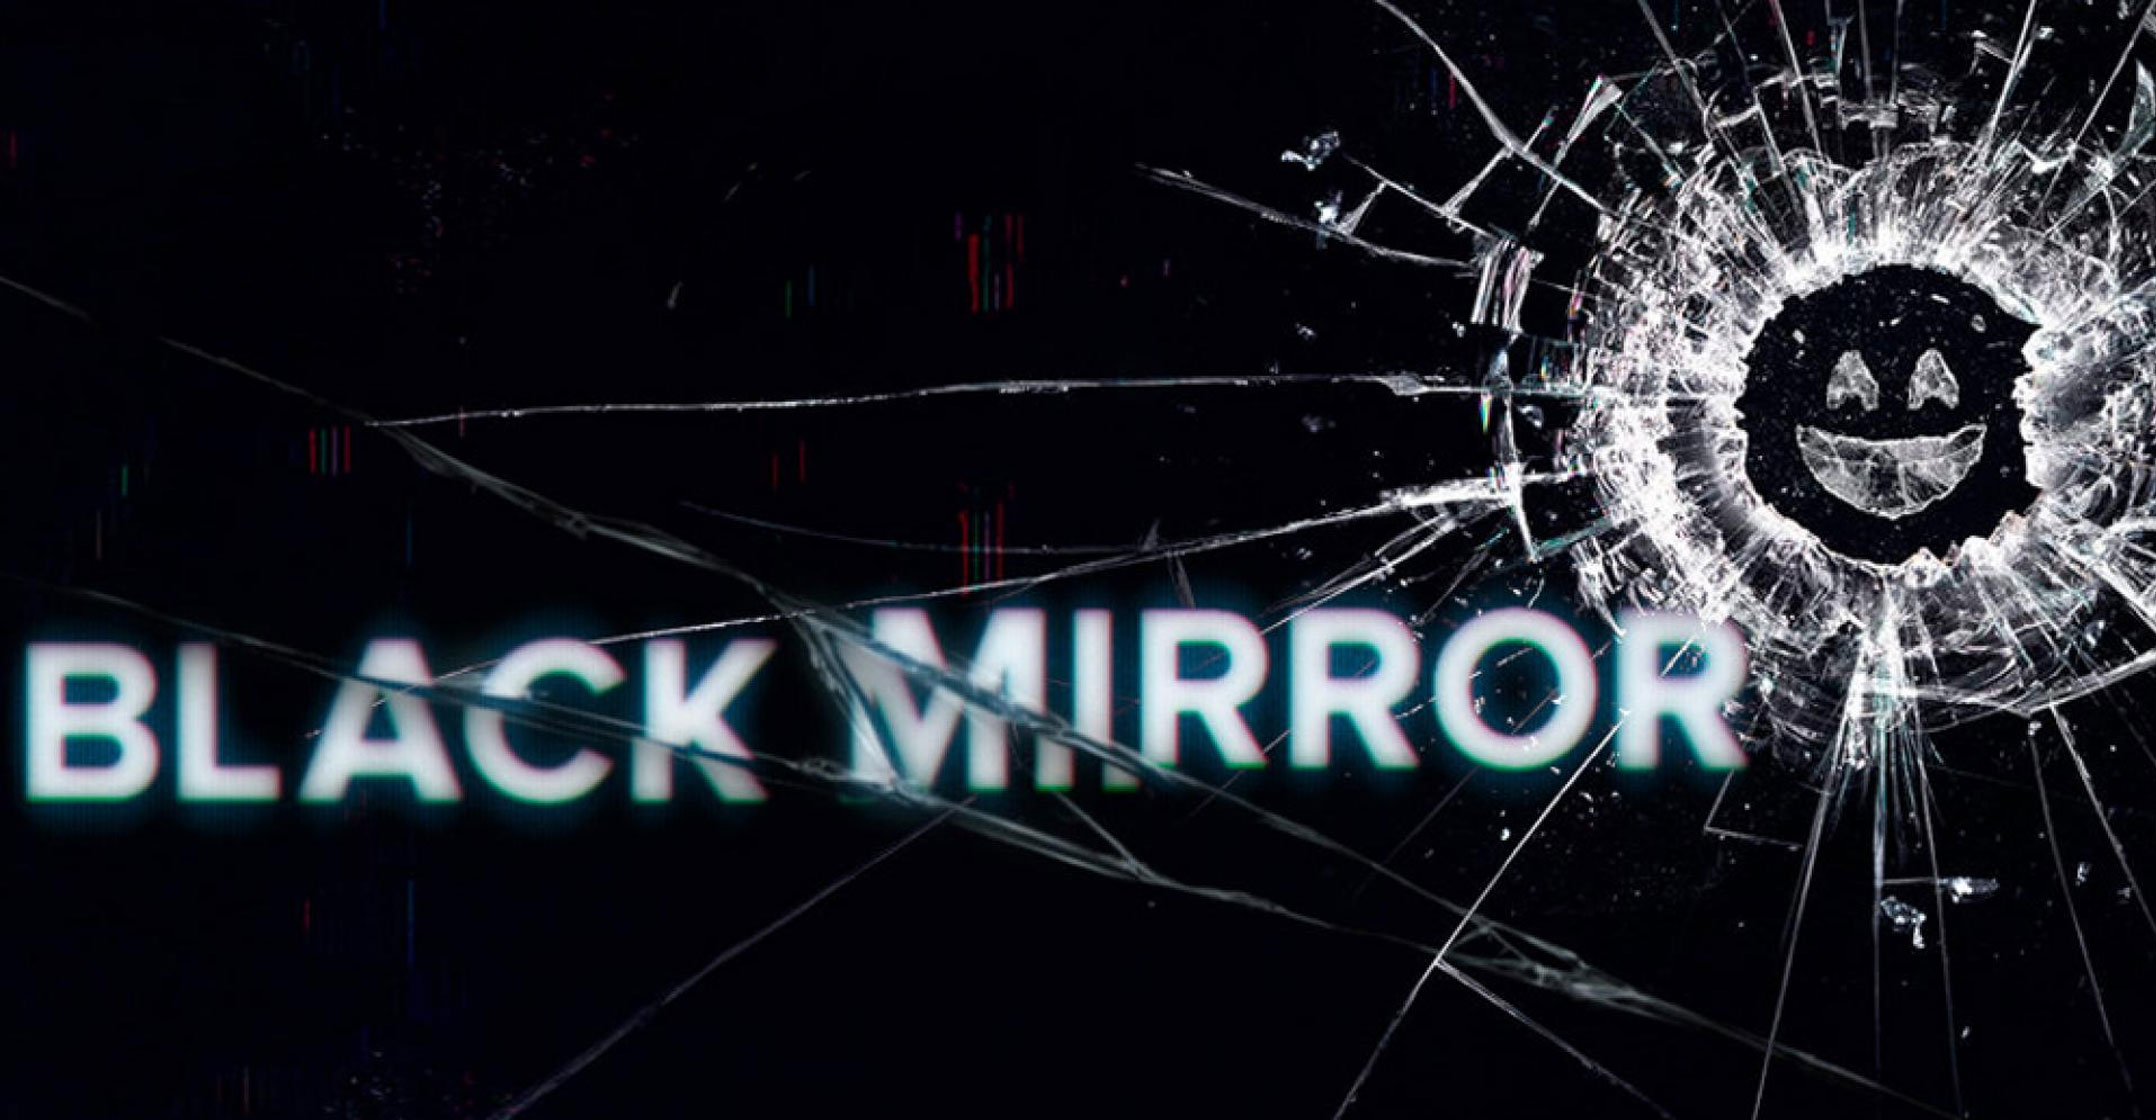 Black Mirror: Netflix To Debut Interactive TV Shows, Starting With Black